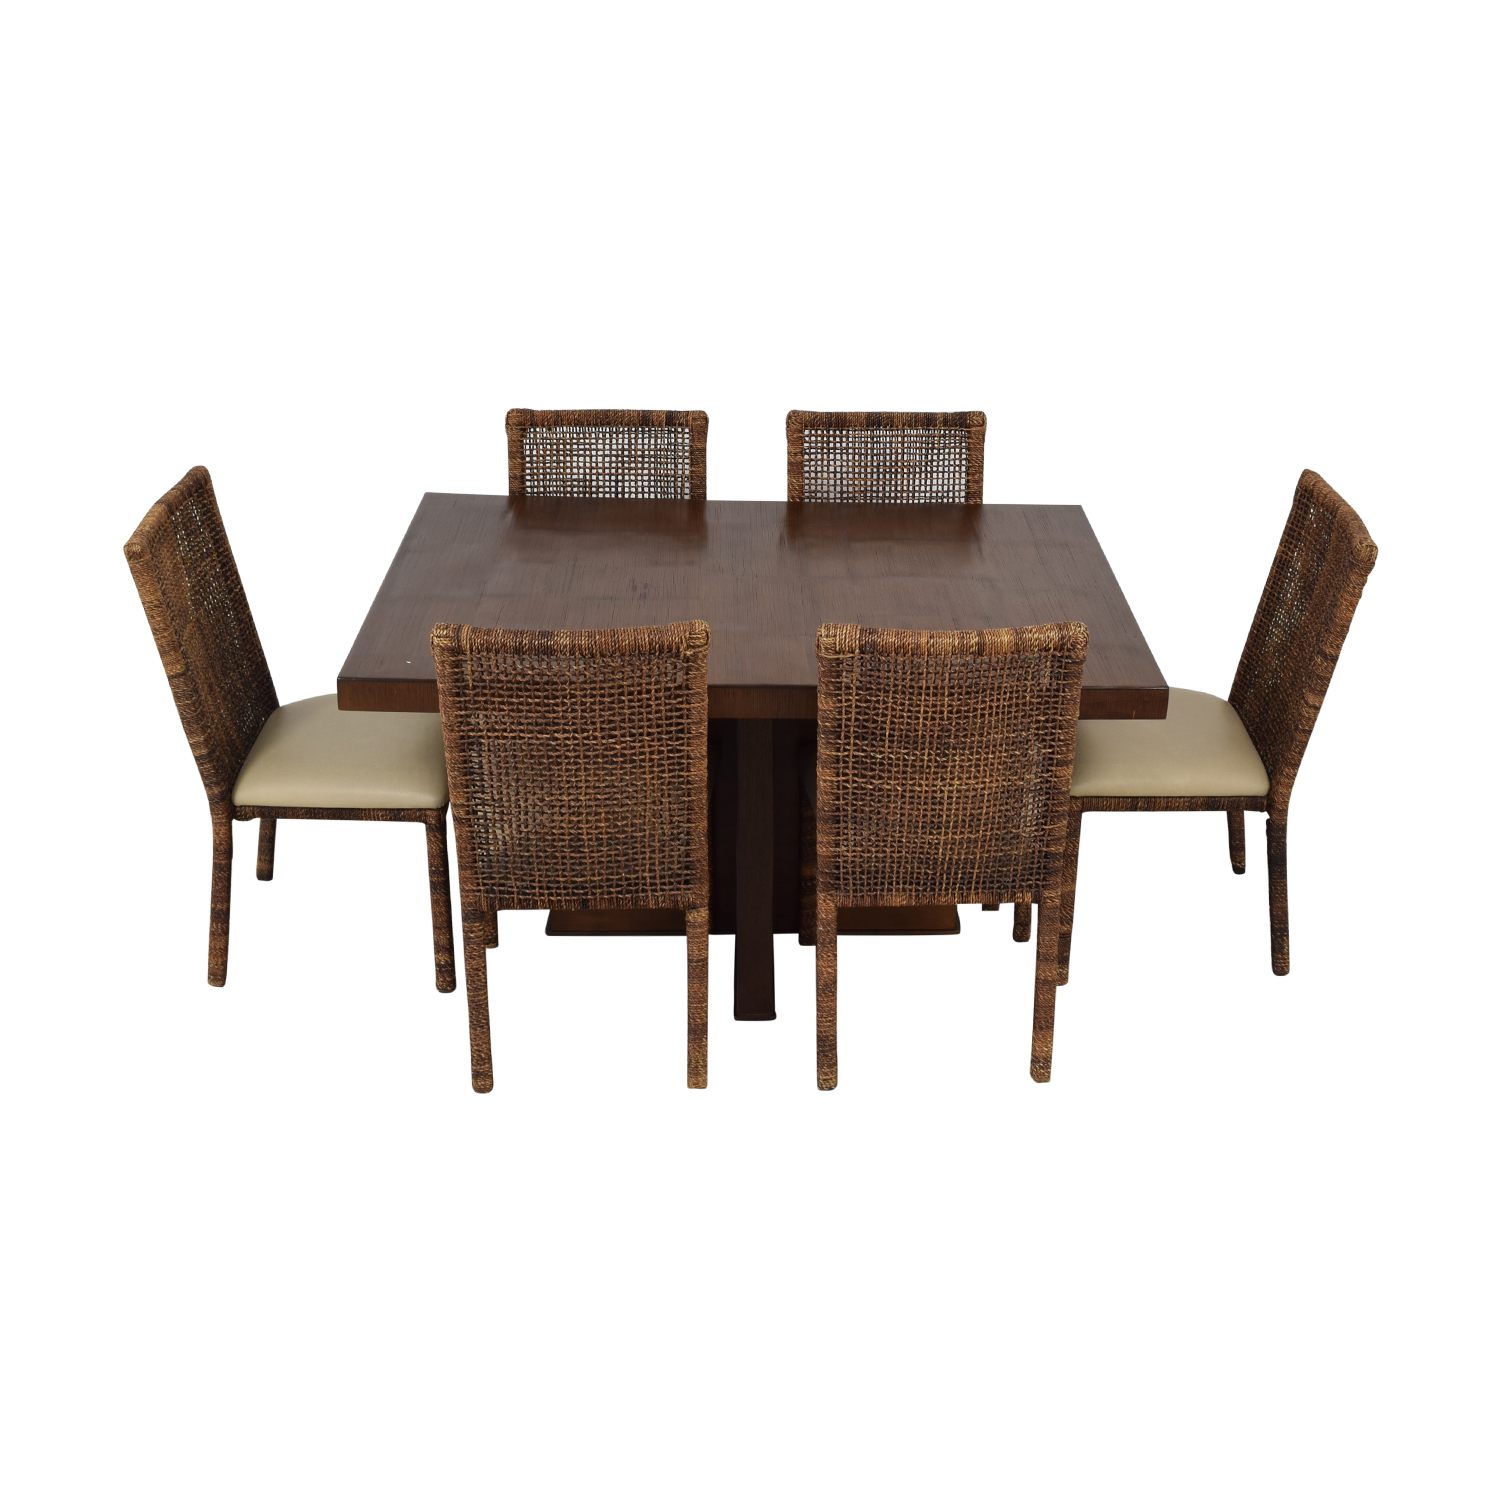 Upholstered Wicker Dining Chairs With Extendable Table Tables